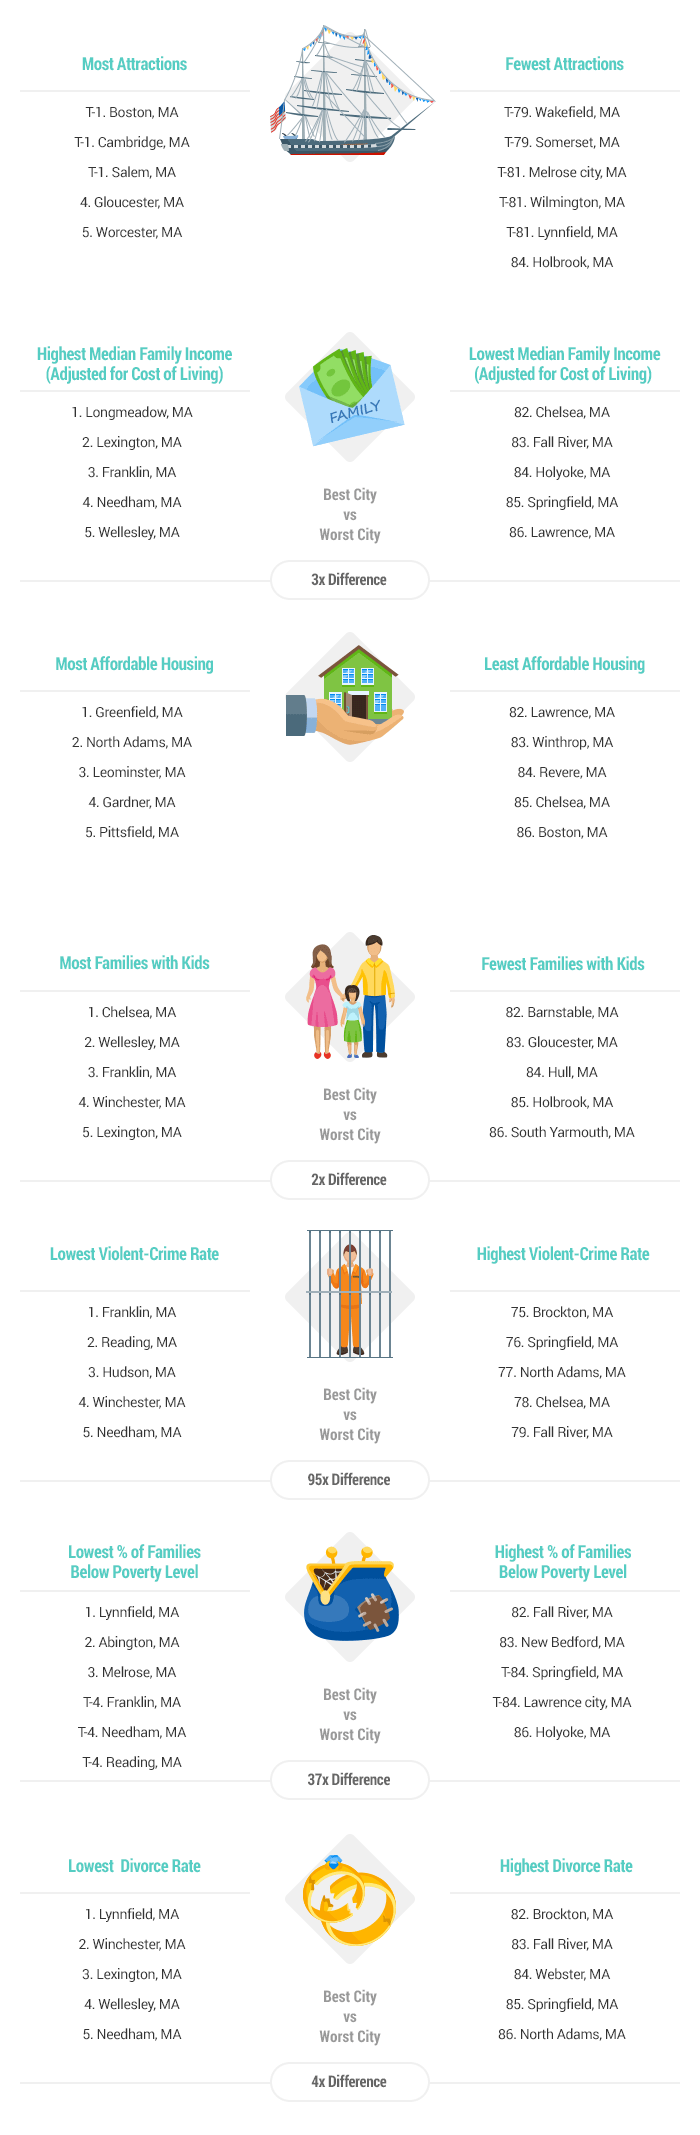 Artwork-2017-Best-&-Worst-Cities for Families in Massachusetts-v1